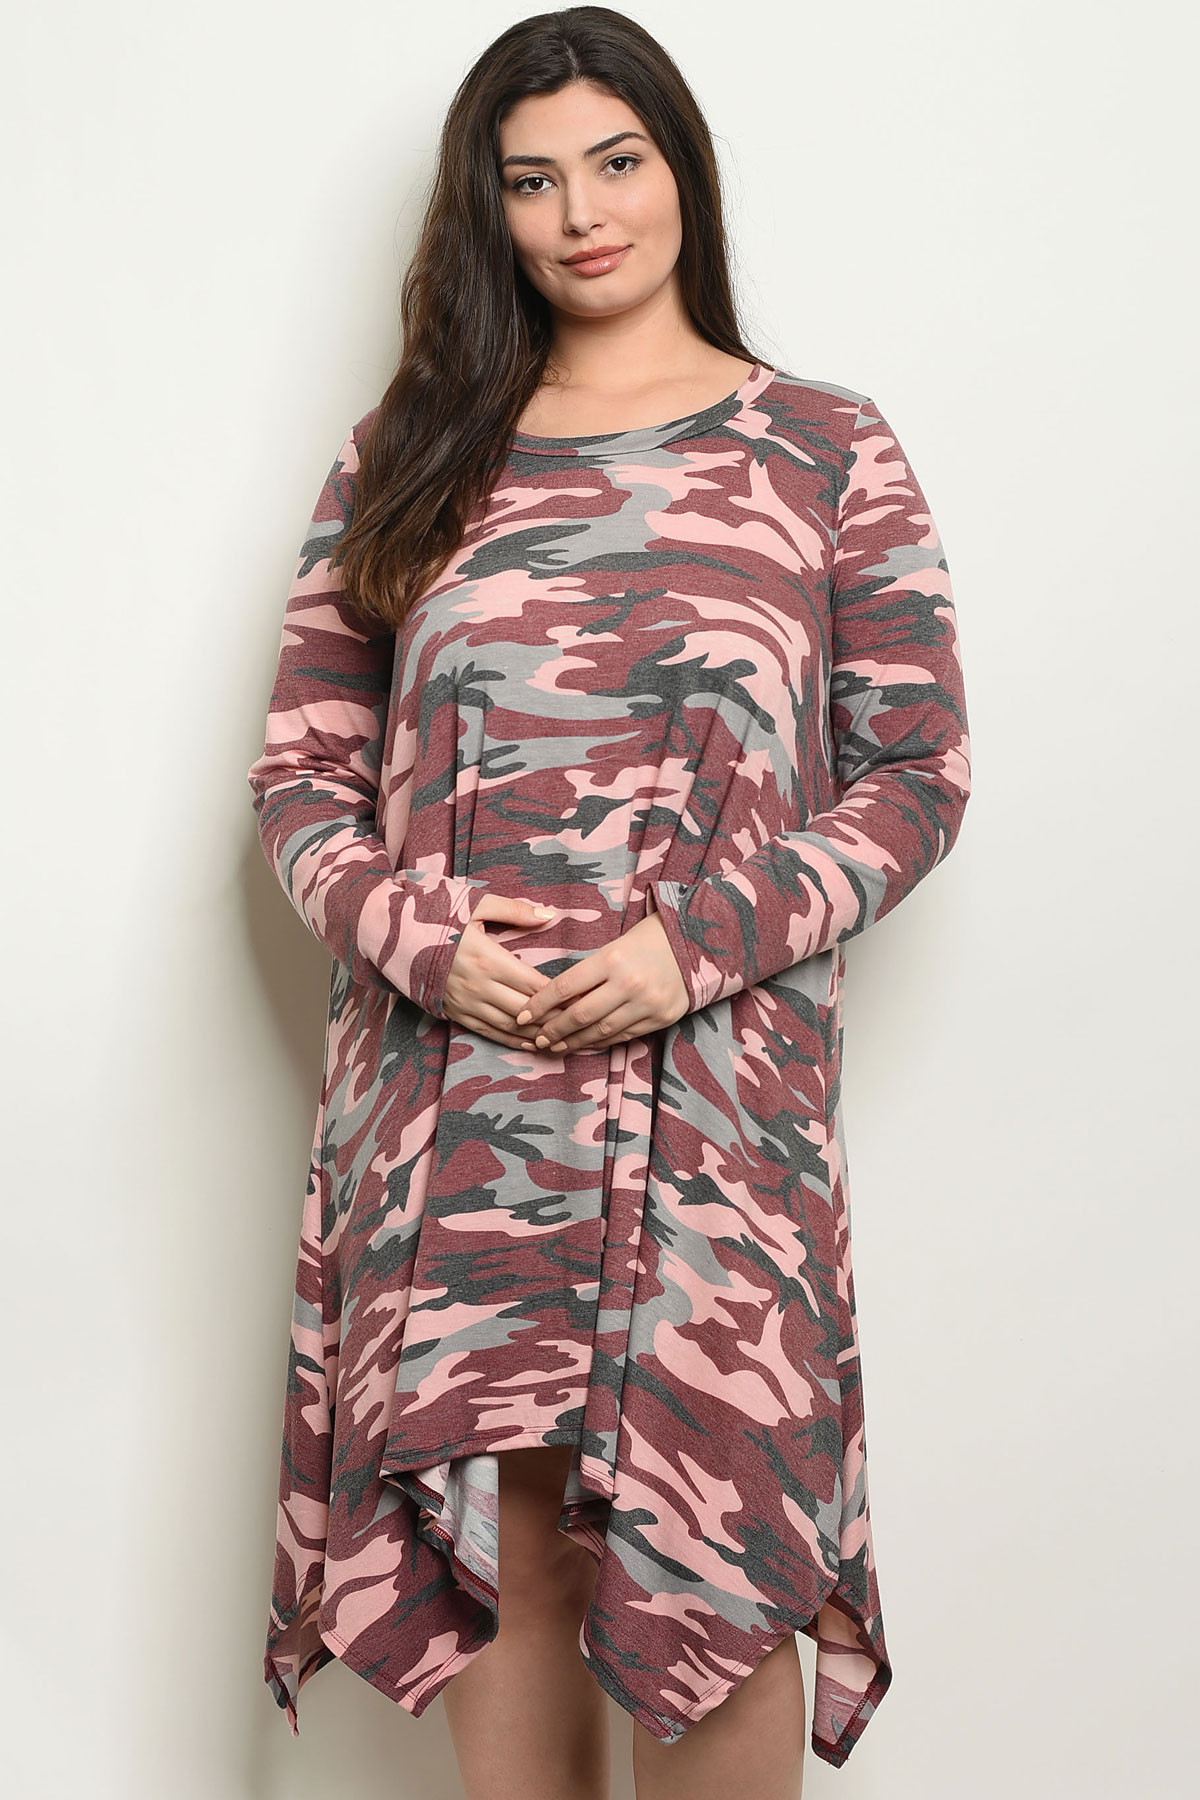 d6a644c1b Long Sleeve Plus Size Dresses - Aztec Stone and Reclamations